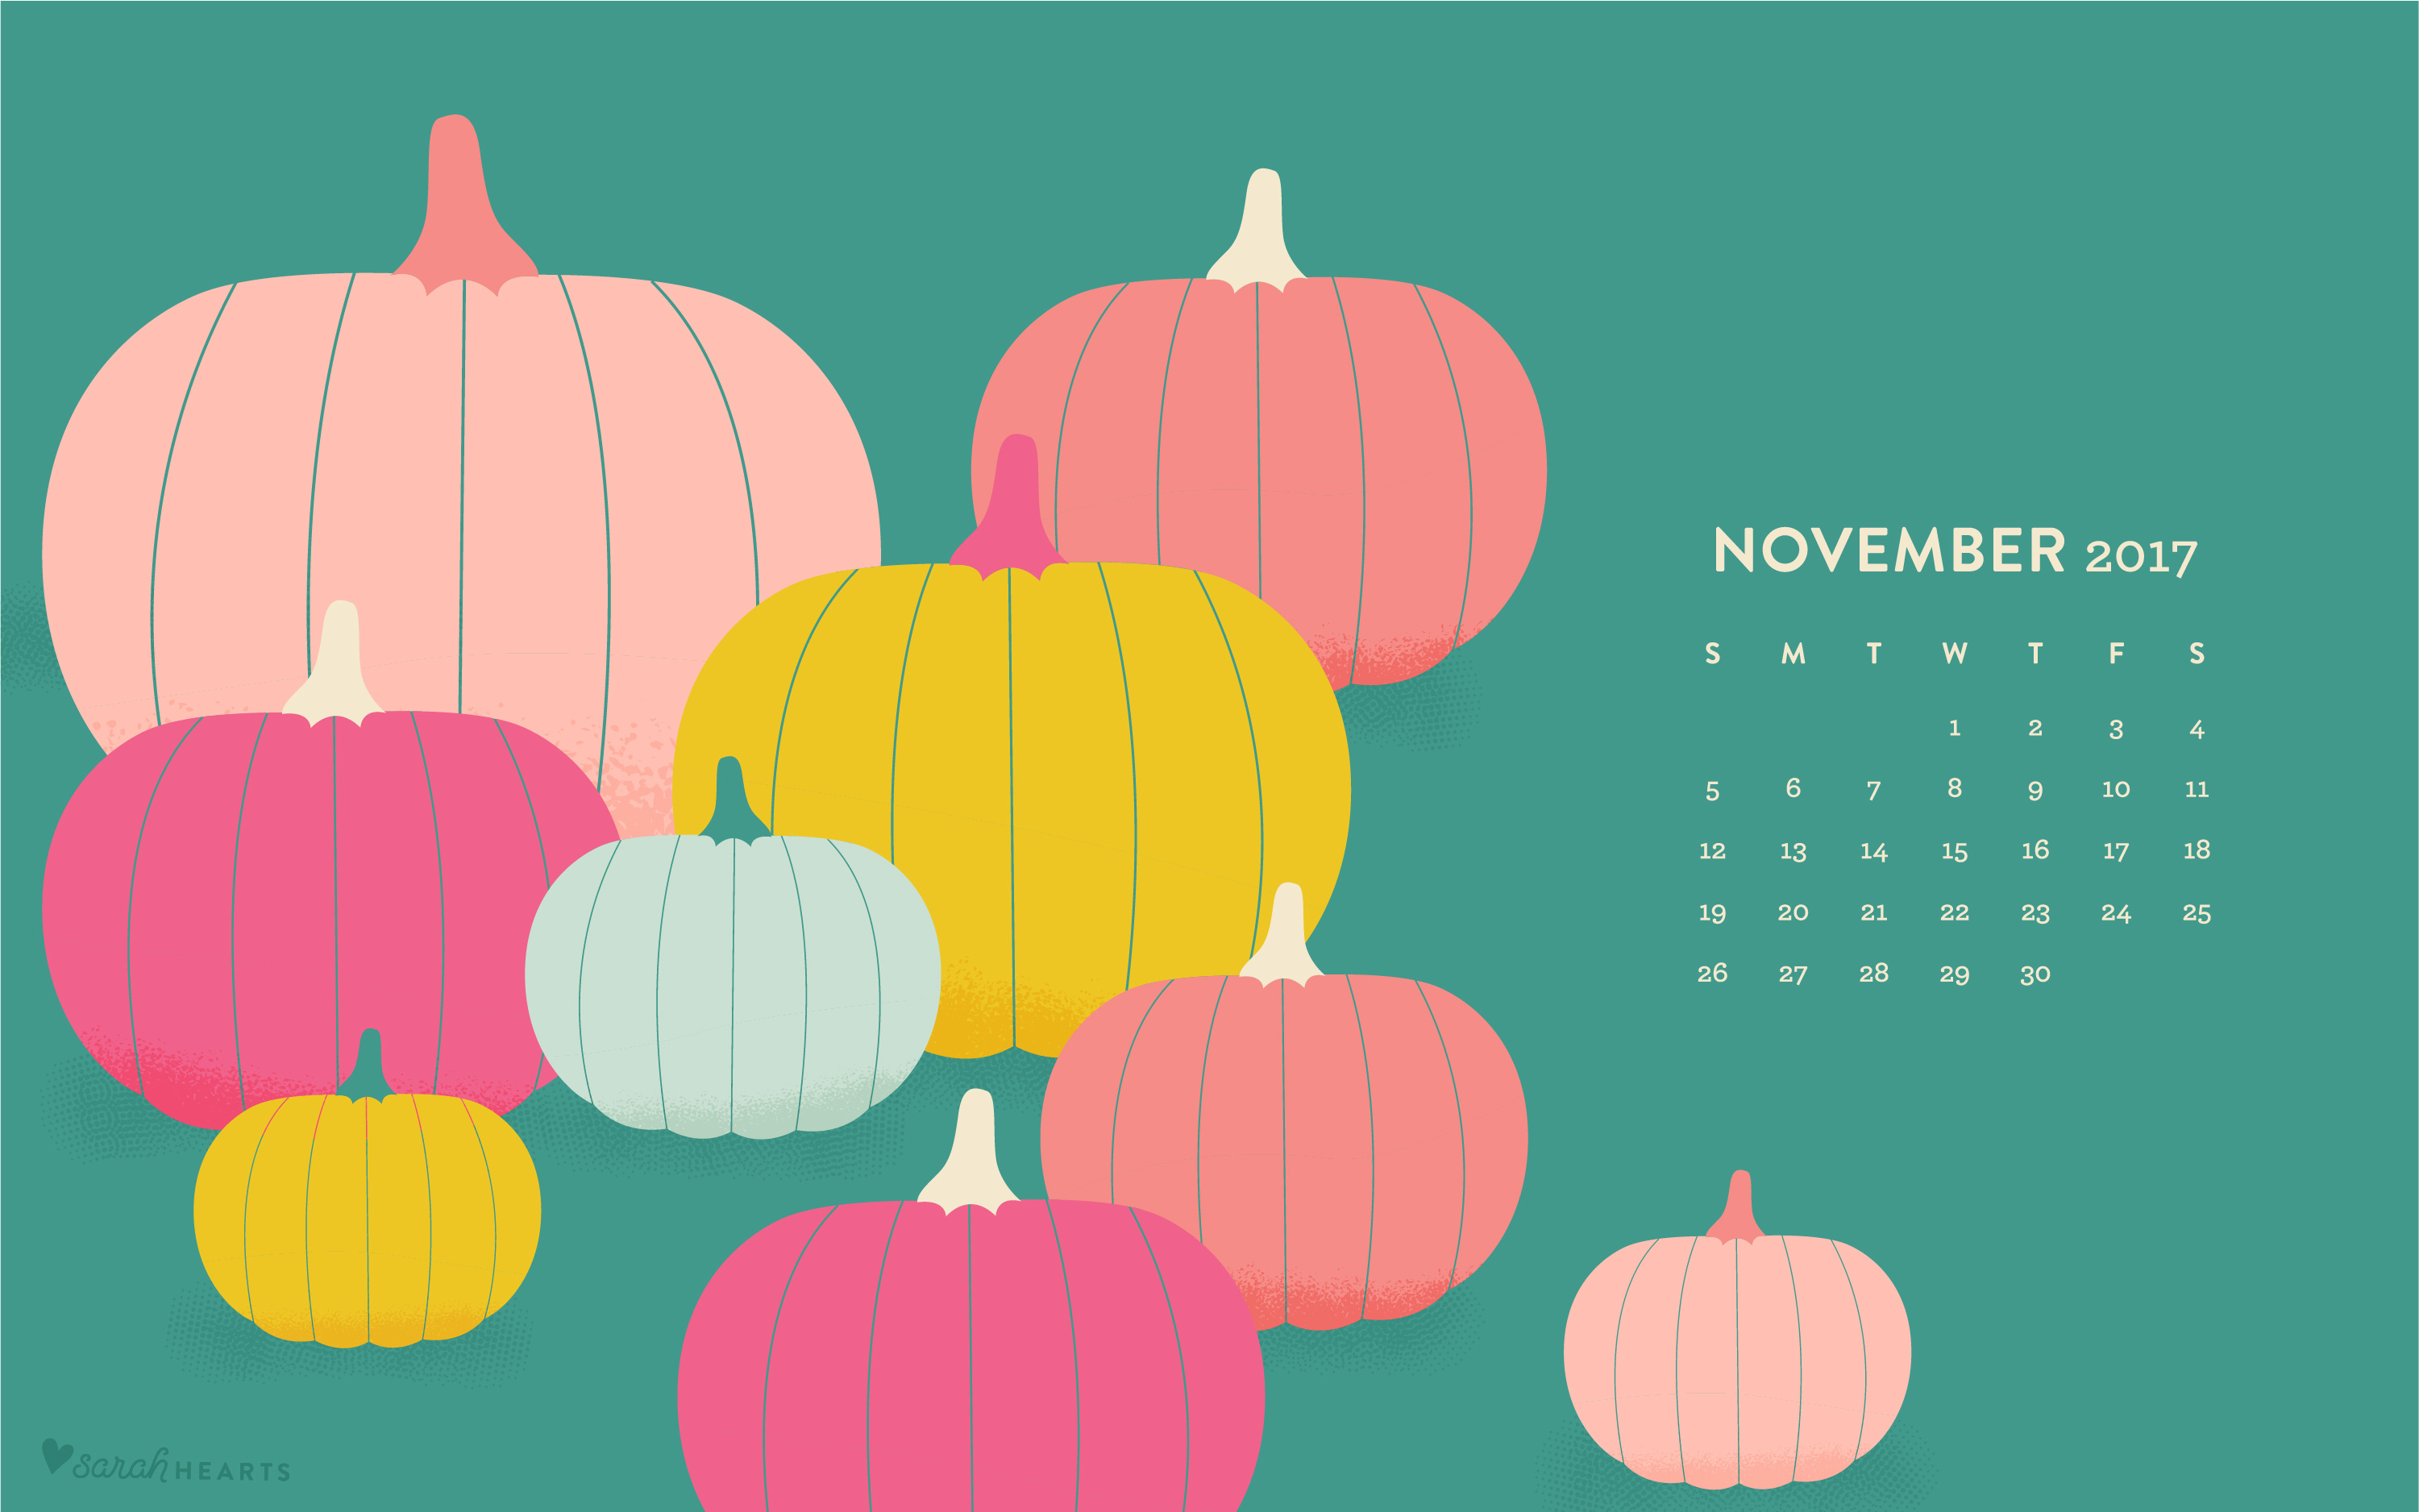 Pink Fall Quote Wallpaper November 2017 Pumpkin Calendar Wallpaper Sarah Hearts